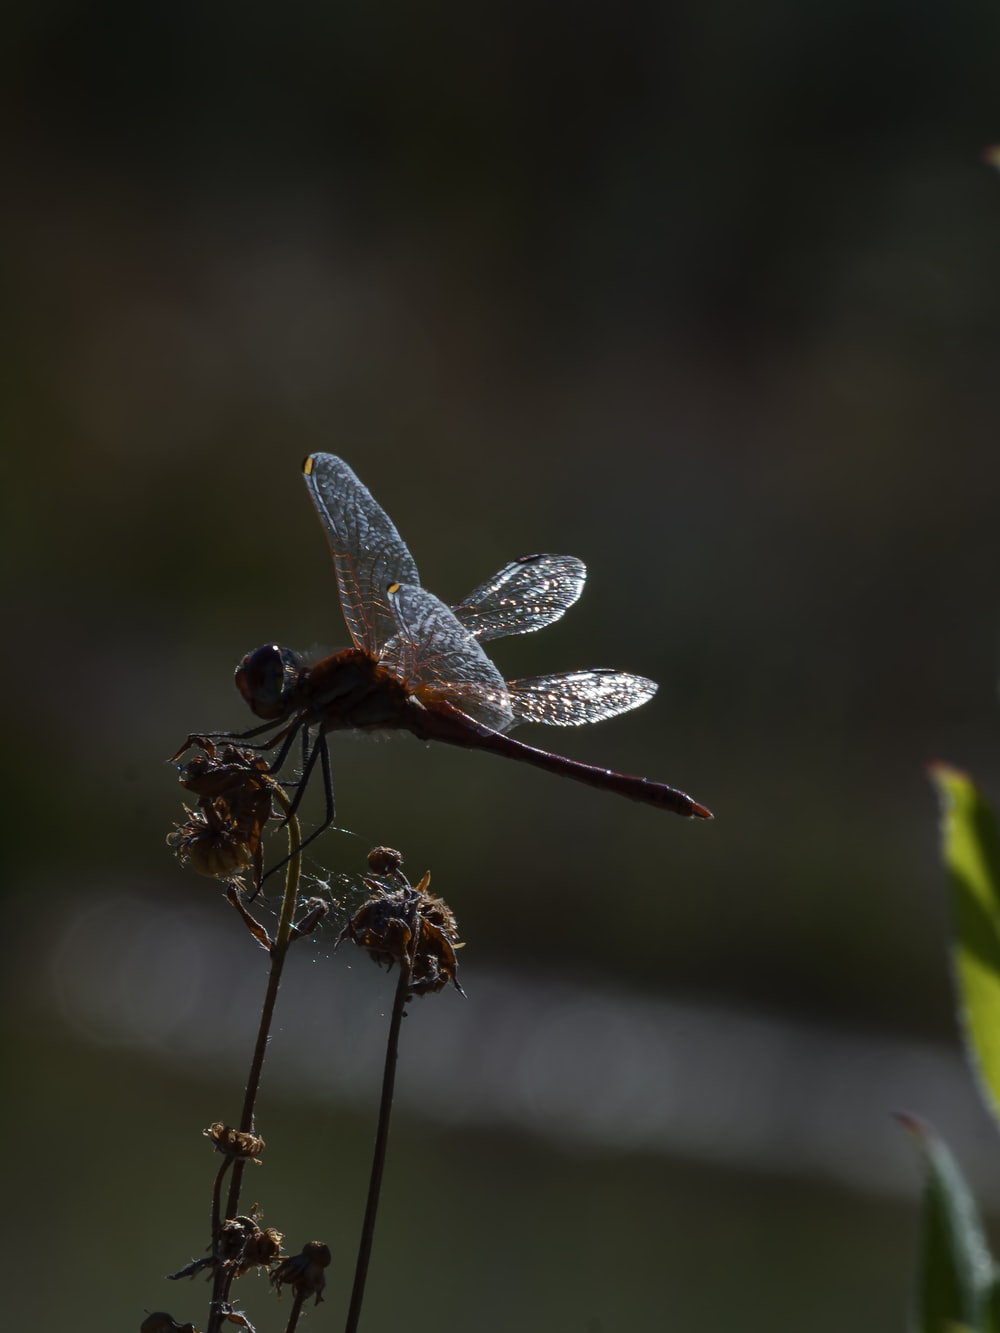 brown and white dragonfly perched on brown stem in close up photography during daytime